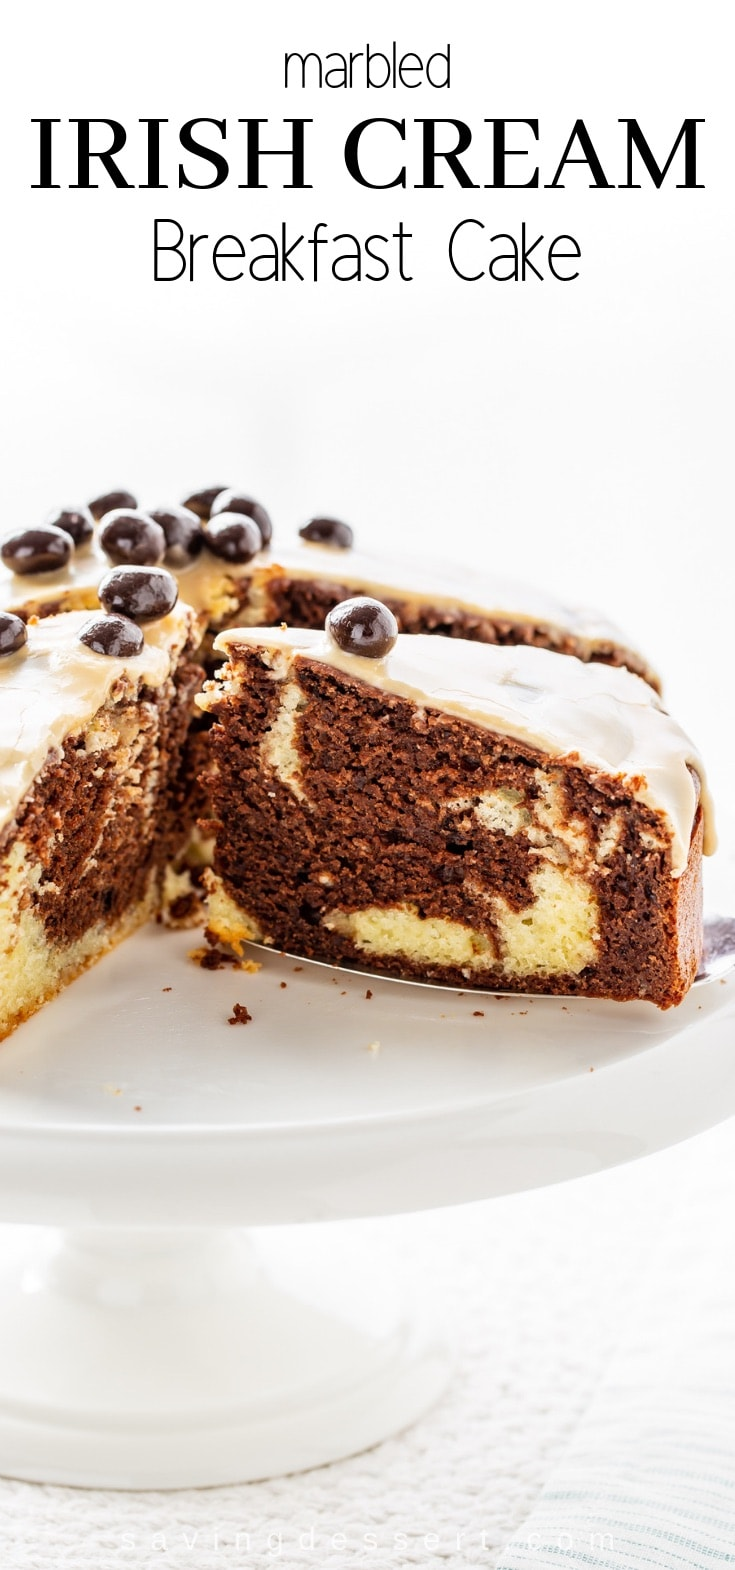 Marbled Irish Cream Breakfast Cake has a soft, tender crumb and layers and layers of flavor from the coffee extract and luscious Irish cream! #Irishcream #breakfastcake #coffeecake #mochacake #irishcreamcake #irishcreambreakfastcake #cake #easycake #brunchcake